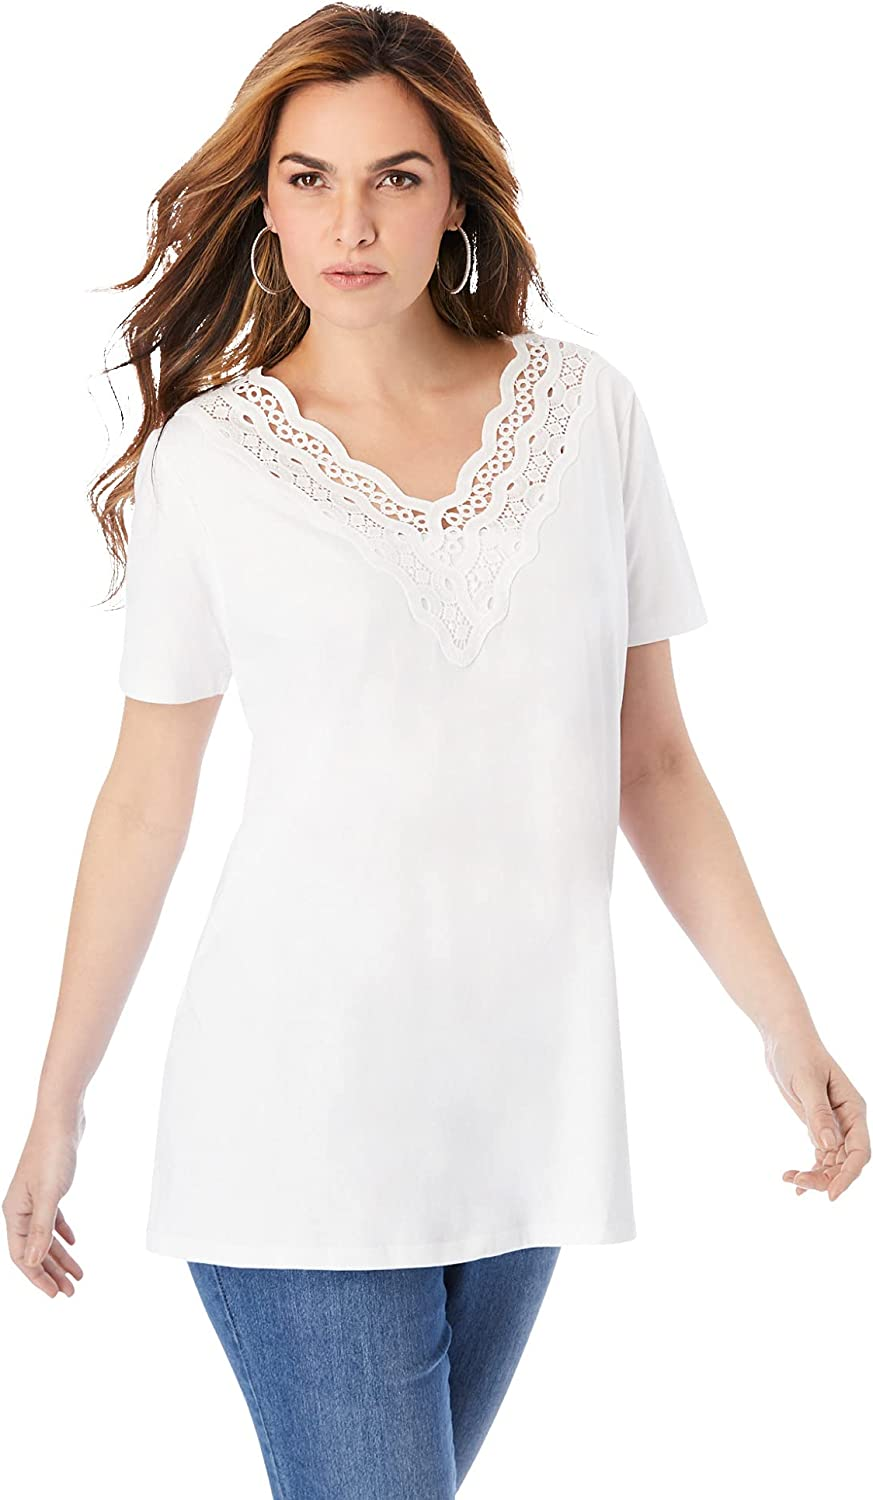 Roamans Women's Plus Size Lace-Trim Embroidered Tee